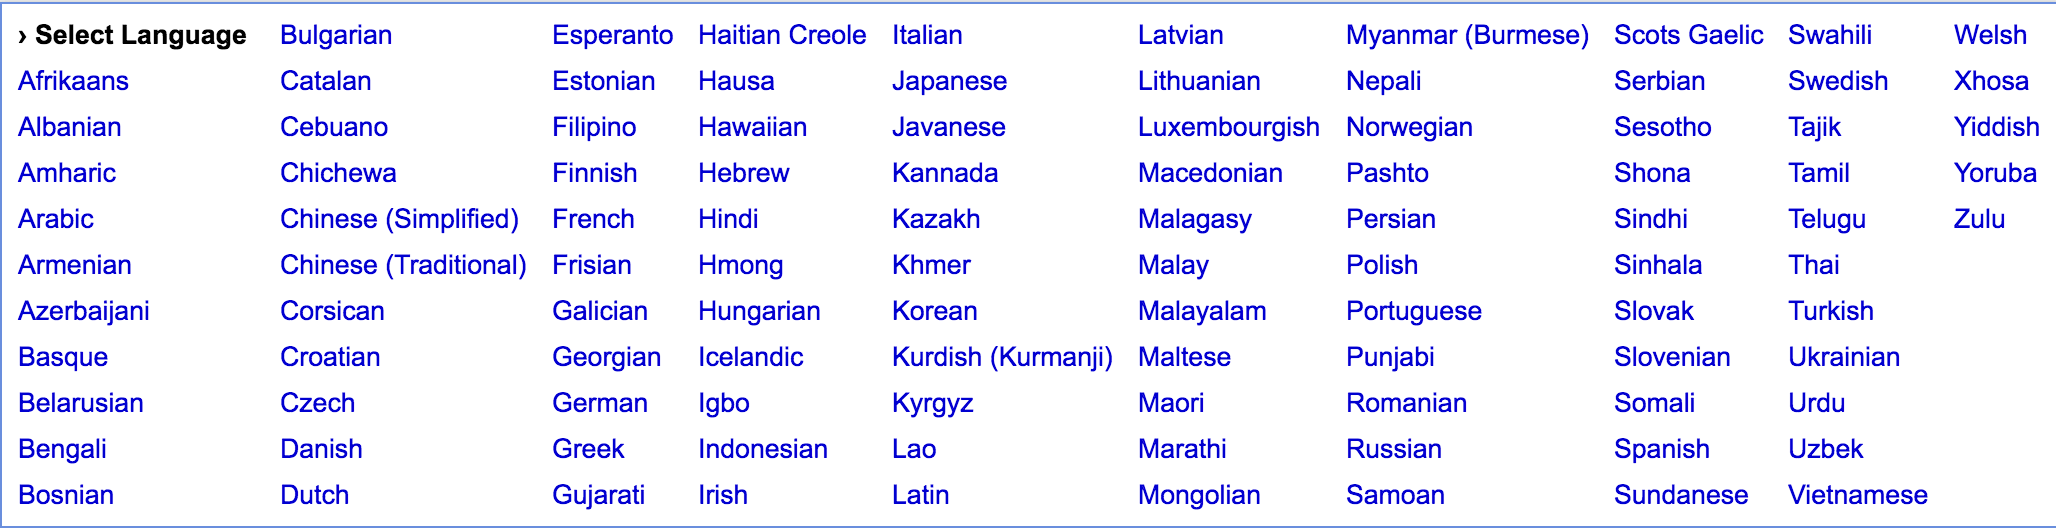 Languages currently supported by Google Translate.